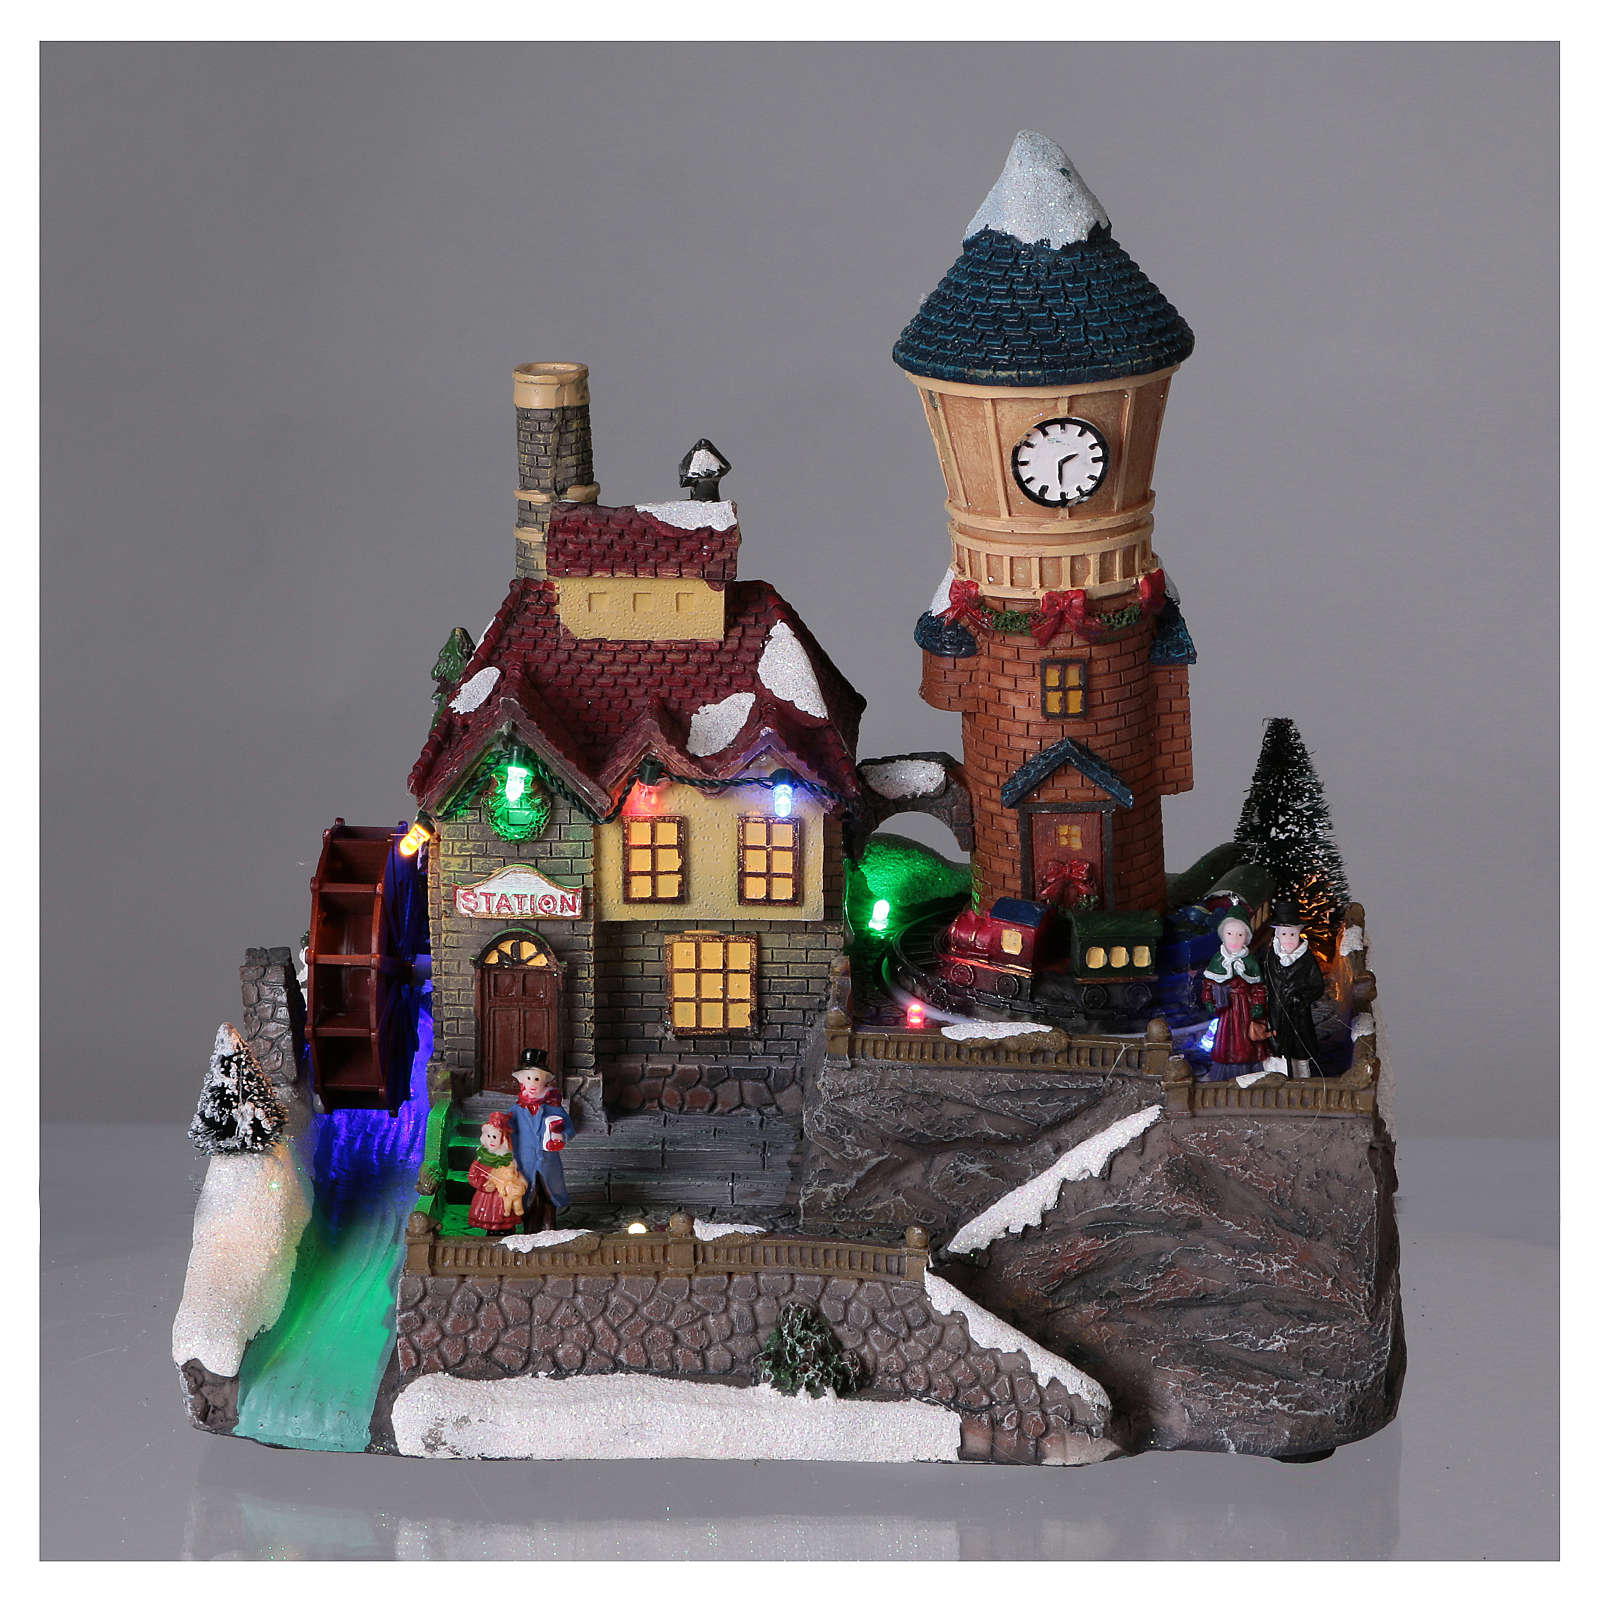 Winter Holiday Village 25x25x15 cm with Moving Mill and Train Battery Operated 3